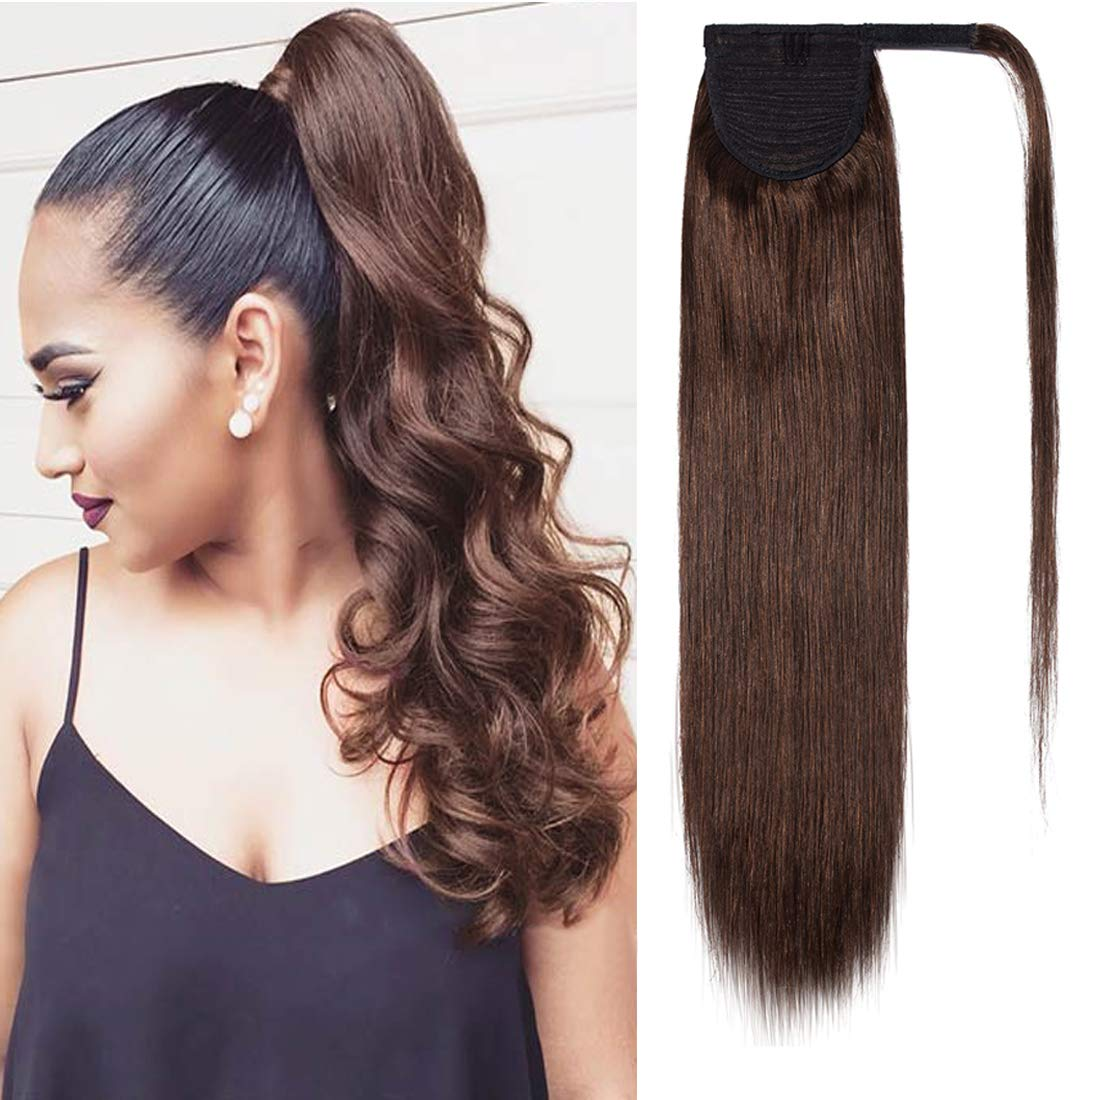 S-noilite Ponytail Extensions Human Hair Max 51% OFF Clip Directly managed store in